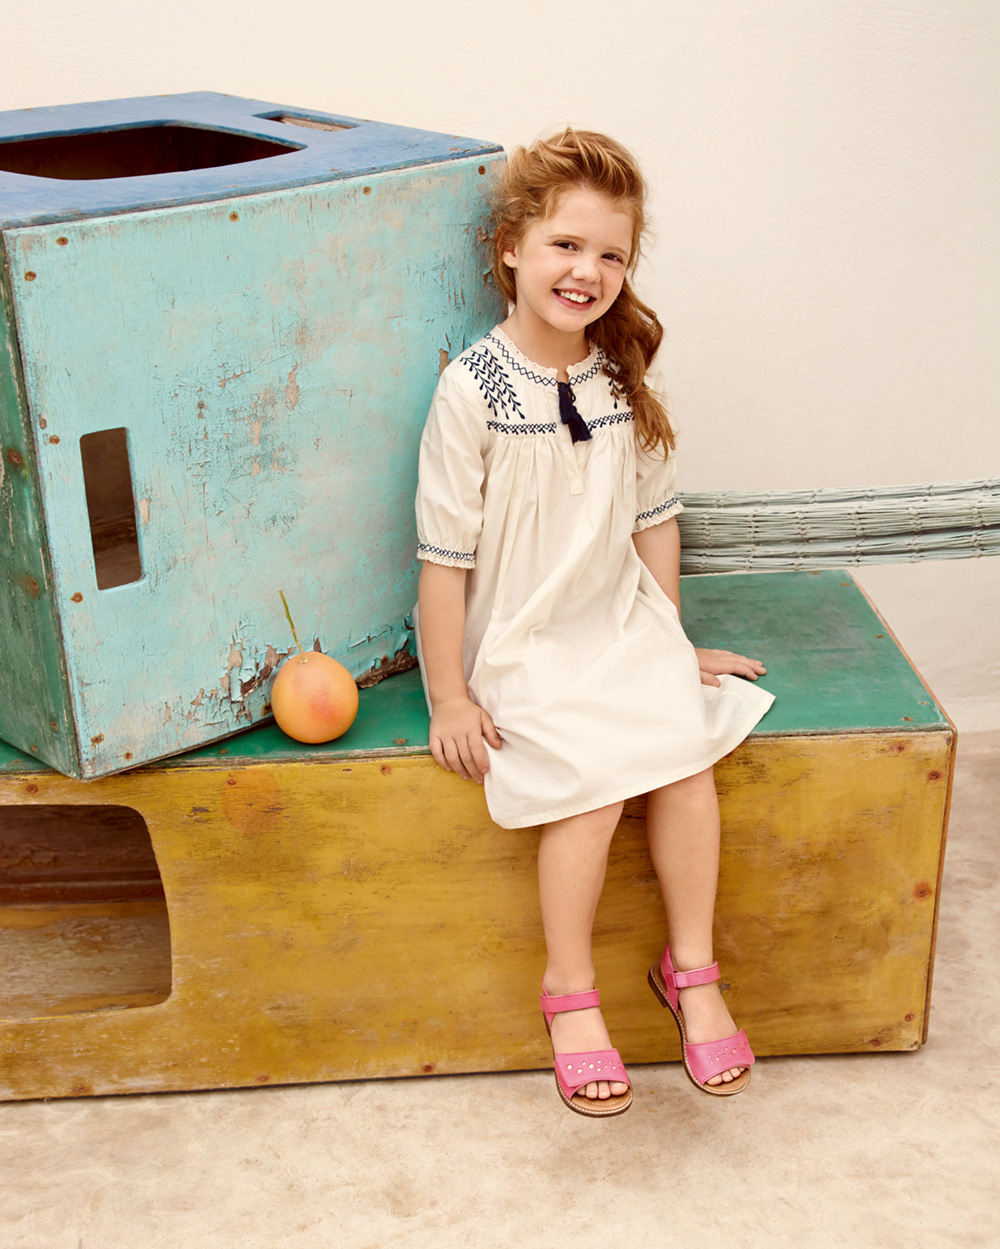 Goertz-Kids-Catalogue-AW-2015-3.jpg